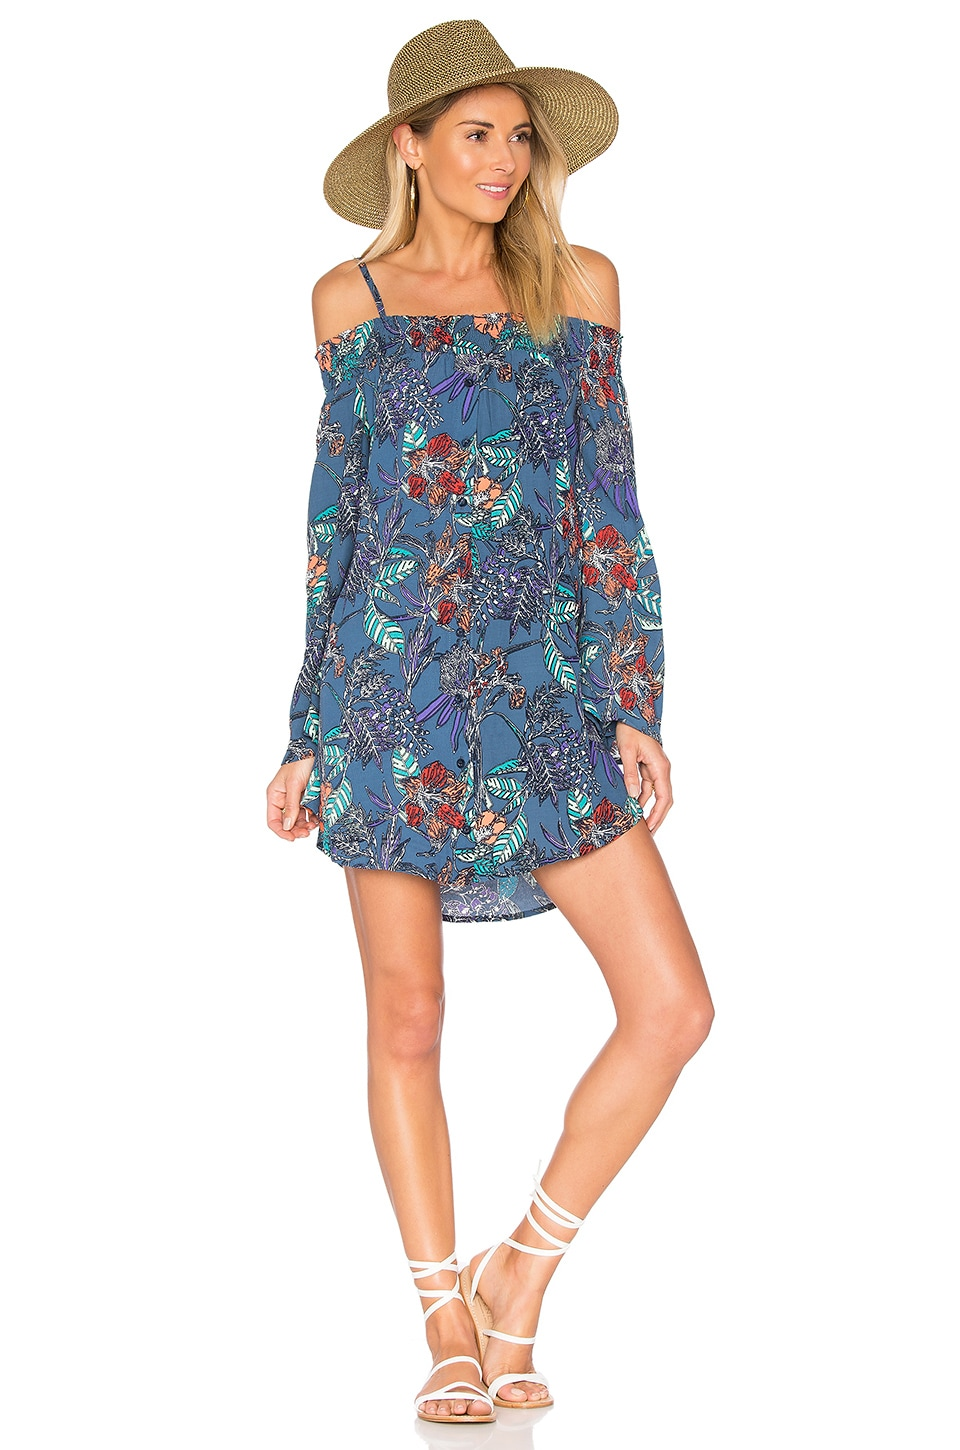 Aila Blue Gypsy Mini Dress in Faded Floral